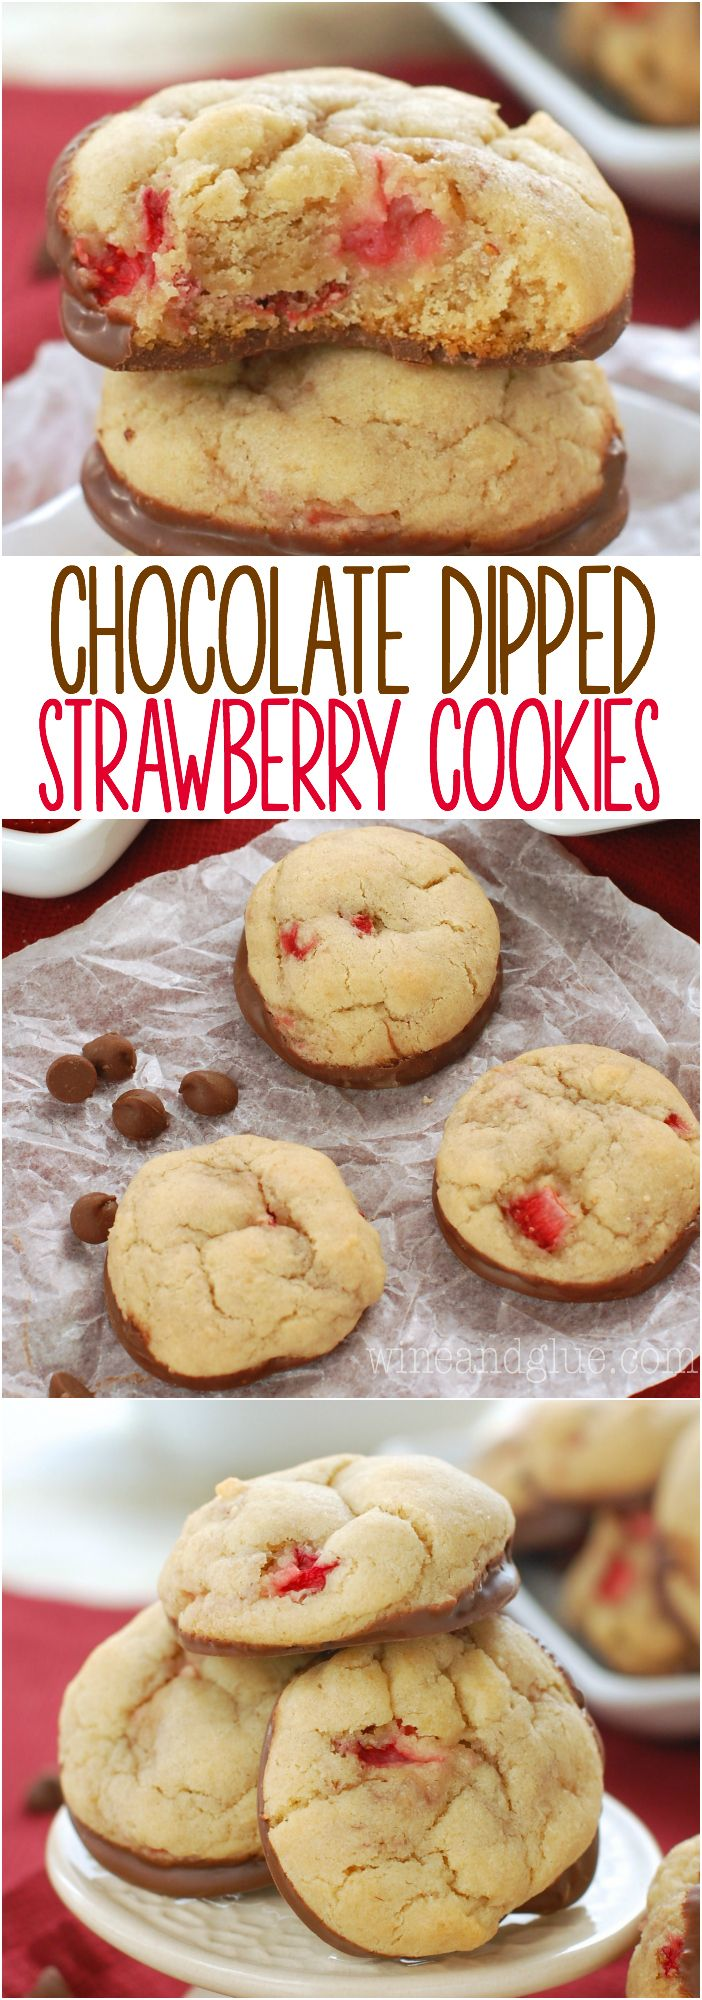 Chocolate Dipped Strawberry Cookies | Soft and delicious cookies packed with fresh strawberries and dipped in chocolate!